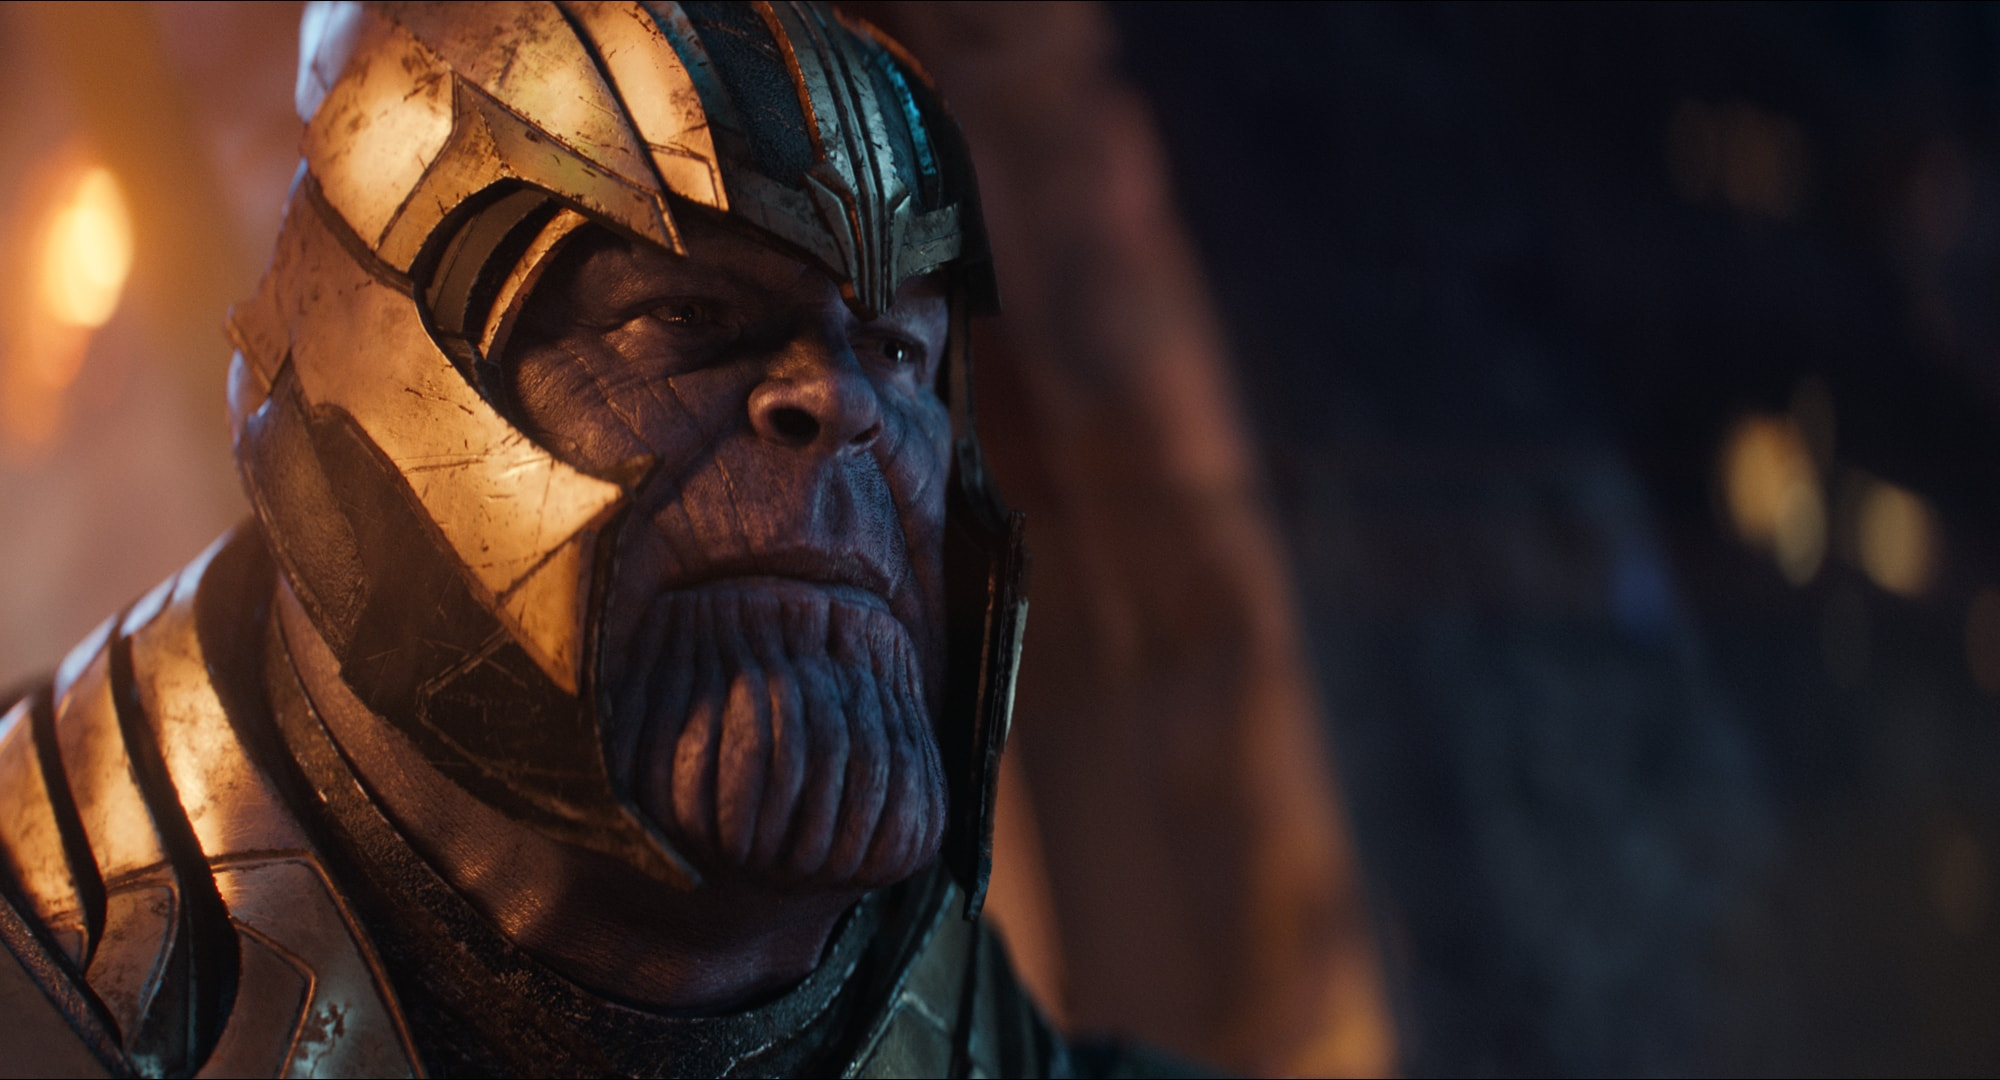 Making Thanos Face the Avengers | fxguide